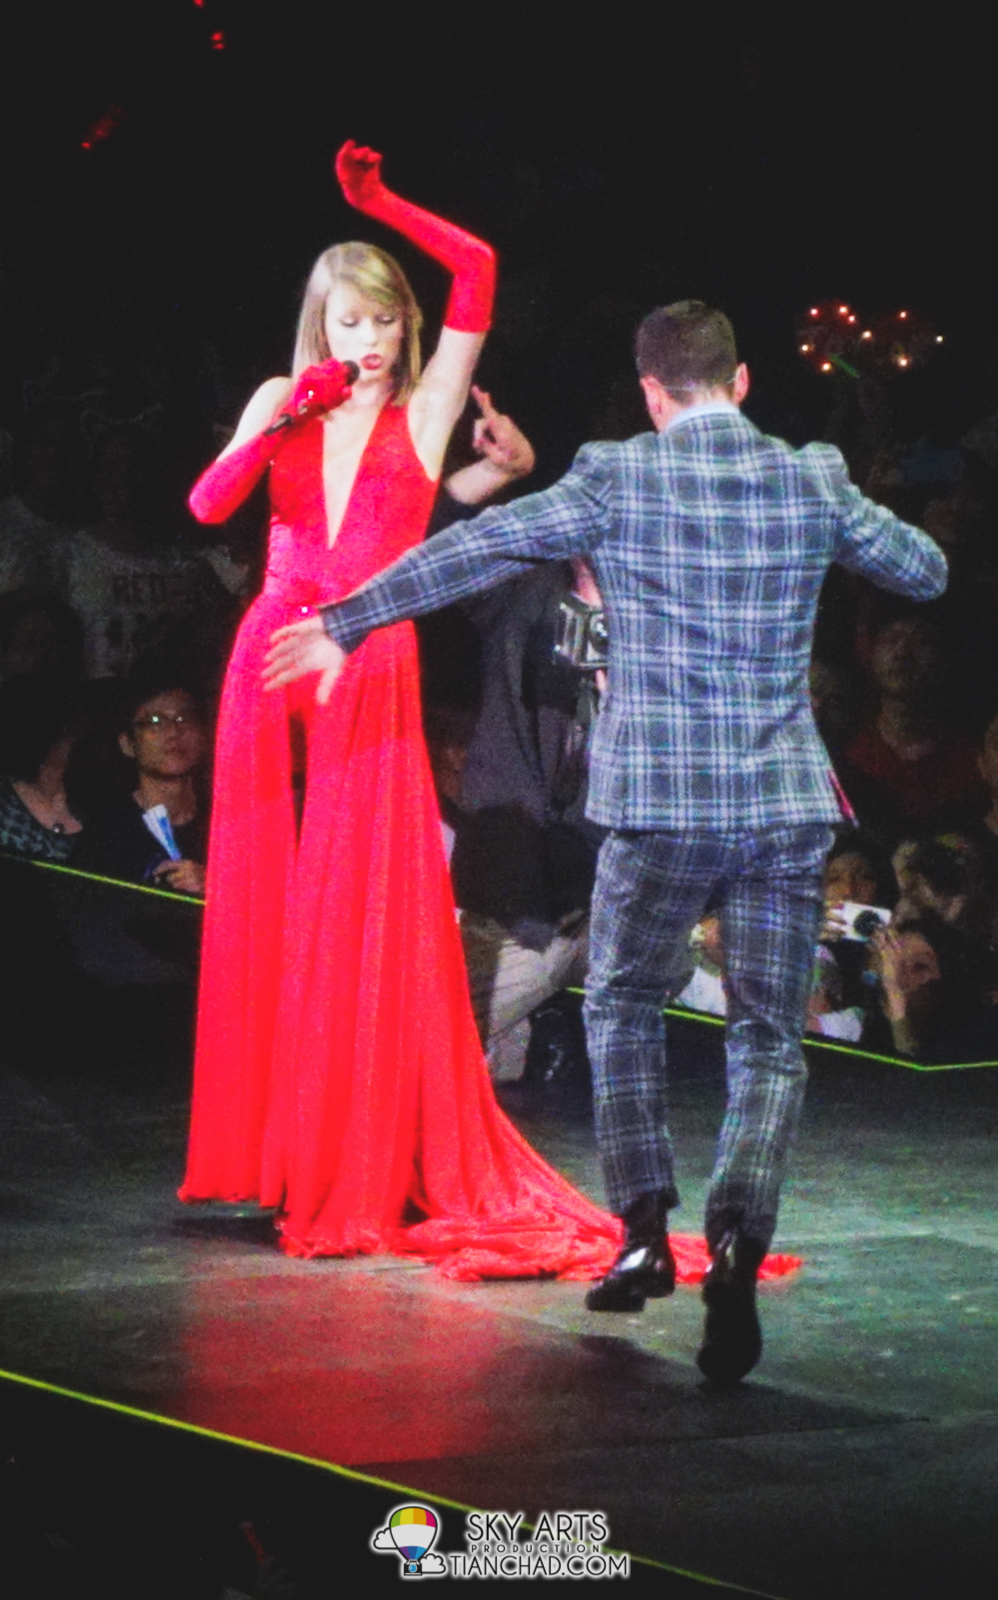 Of course, Taylor Swift does dance too